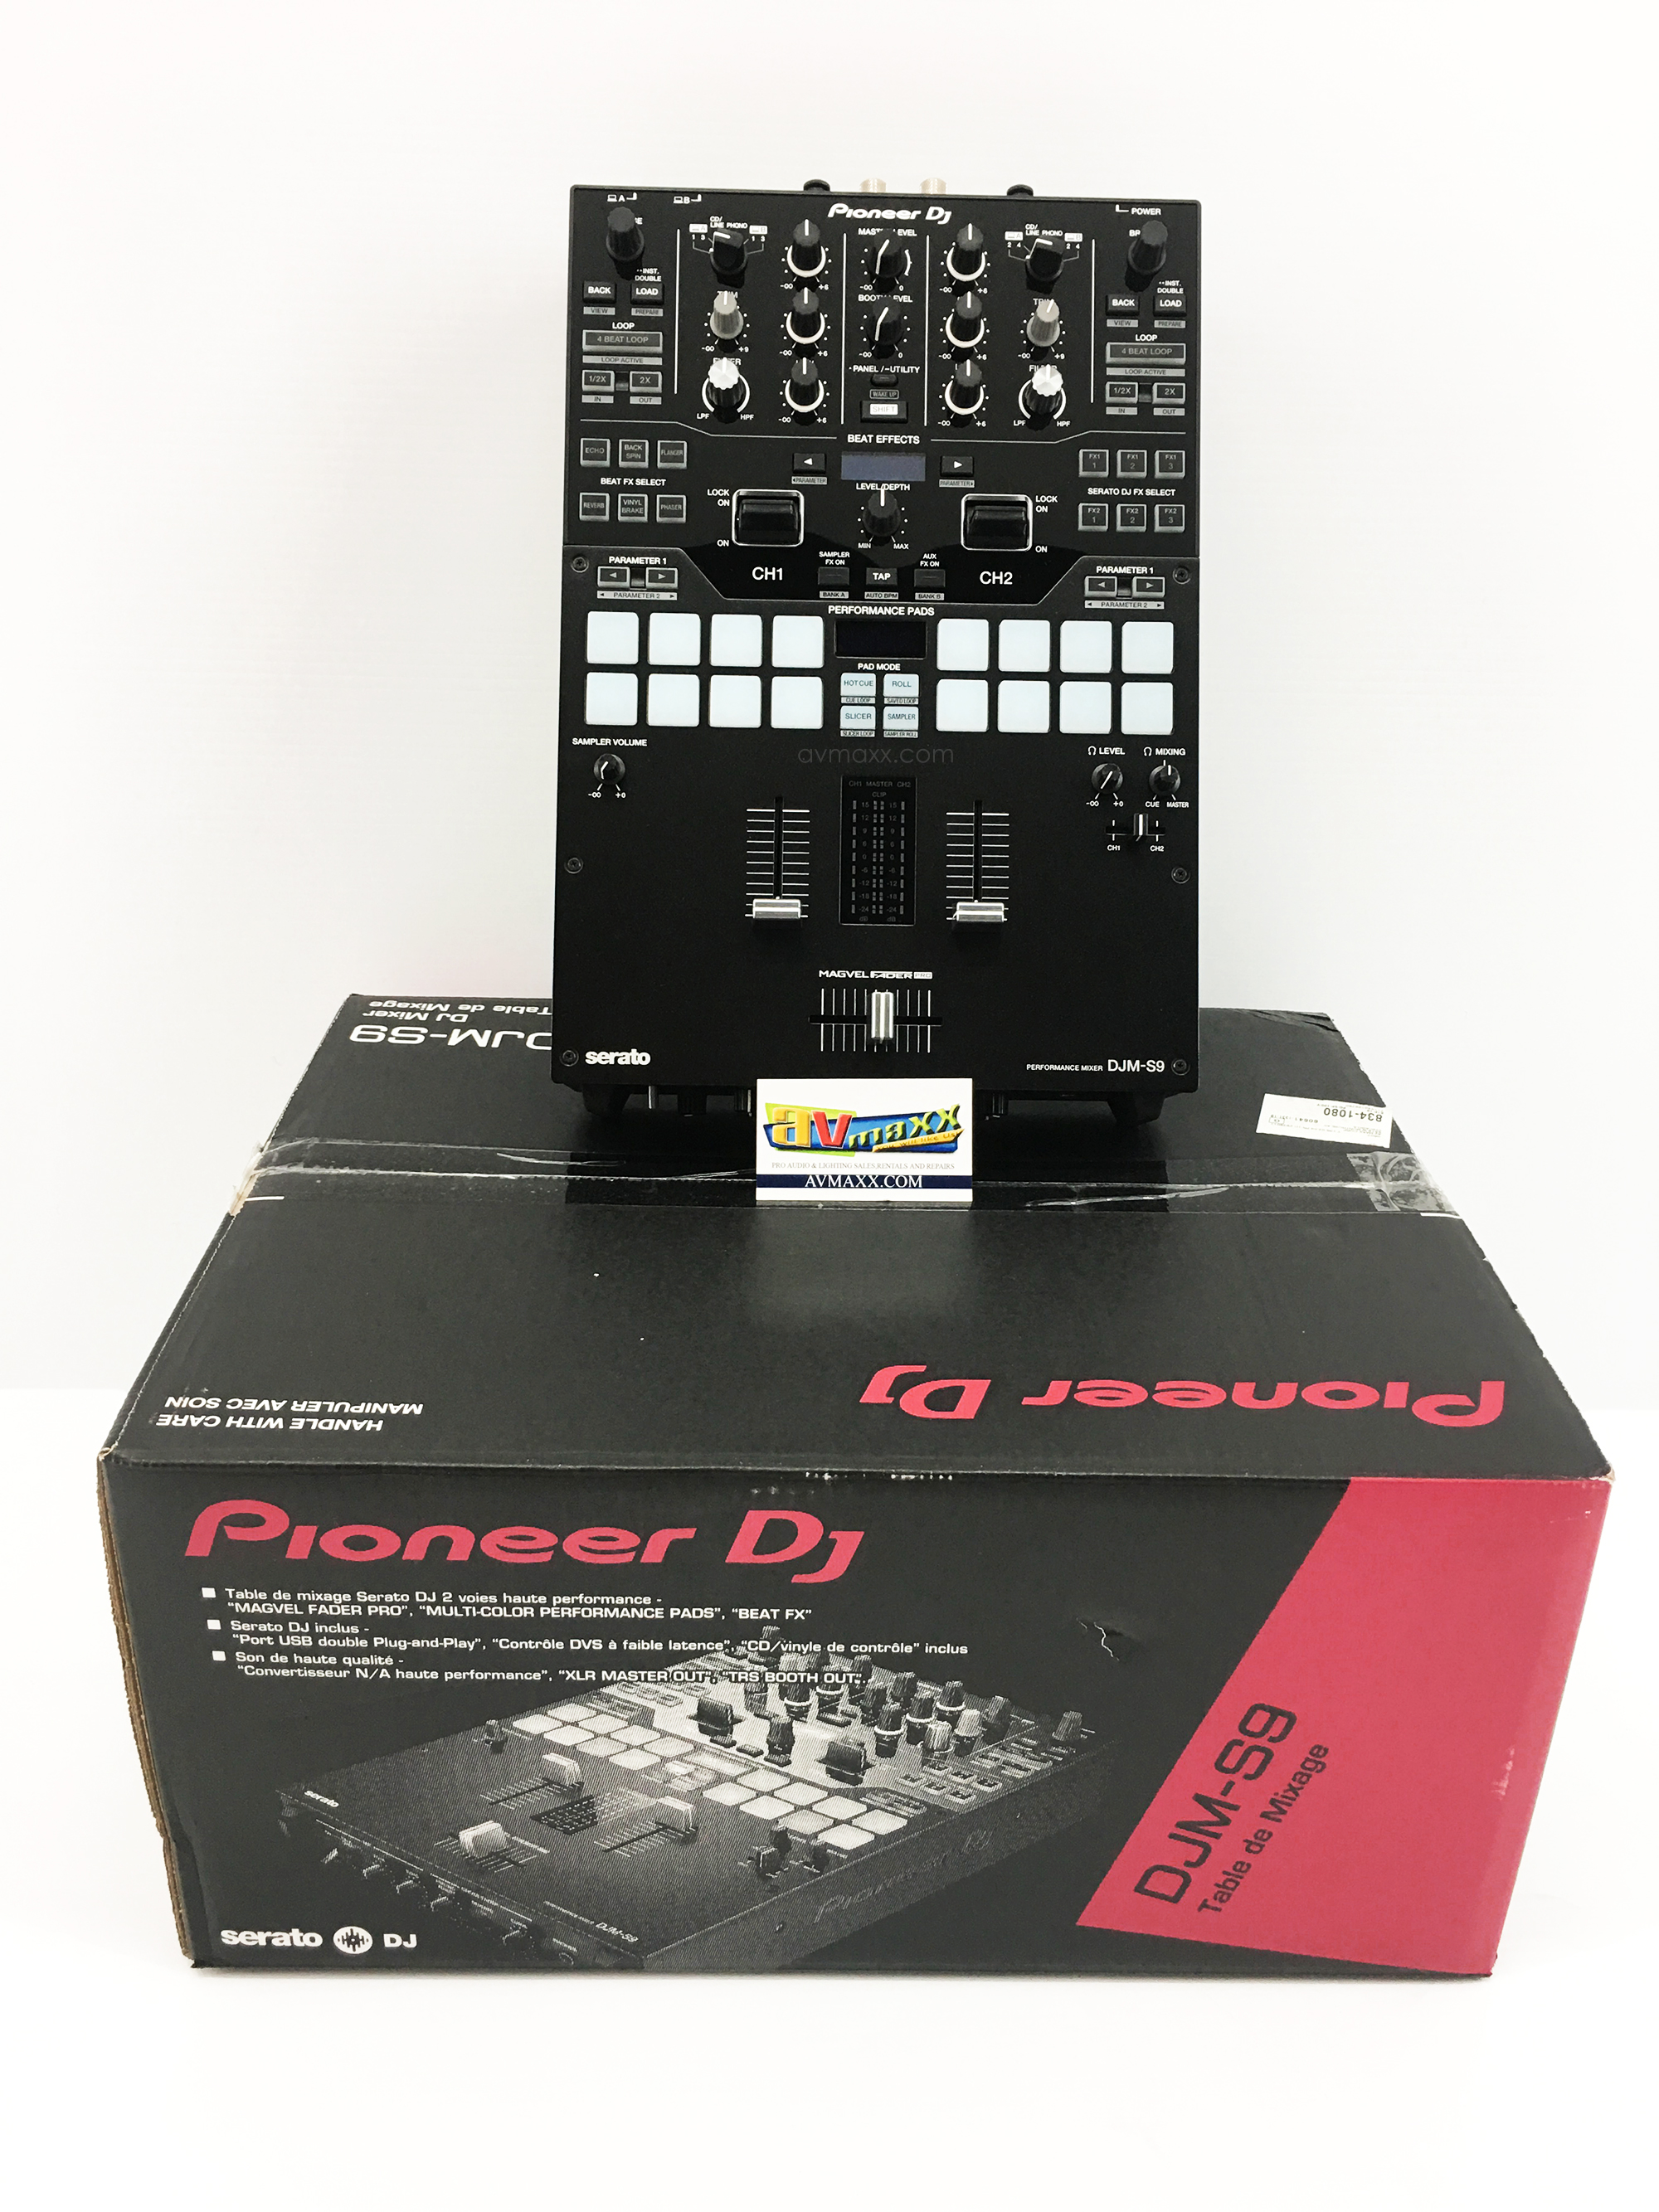 pioneer djm s9 used used dj mixers used pioneer gear. Black Bedroom Furniture Sets. Home Design Ideas